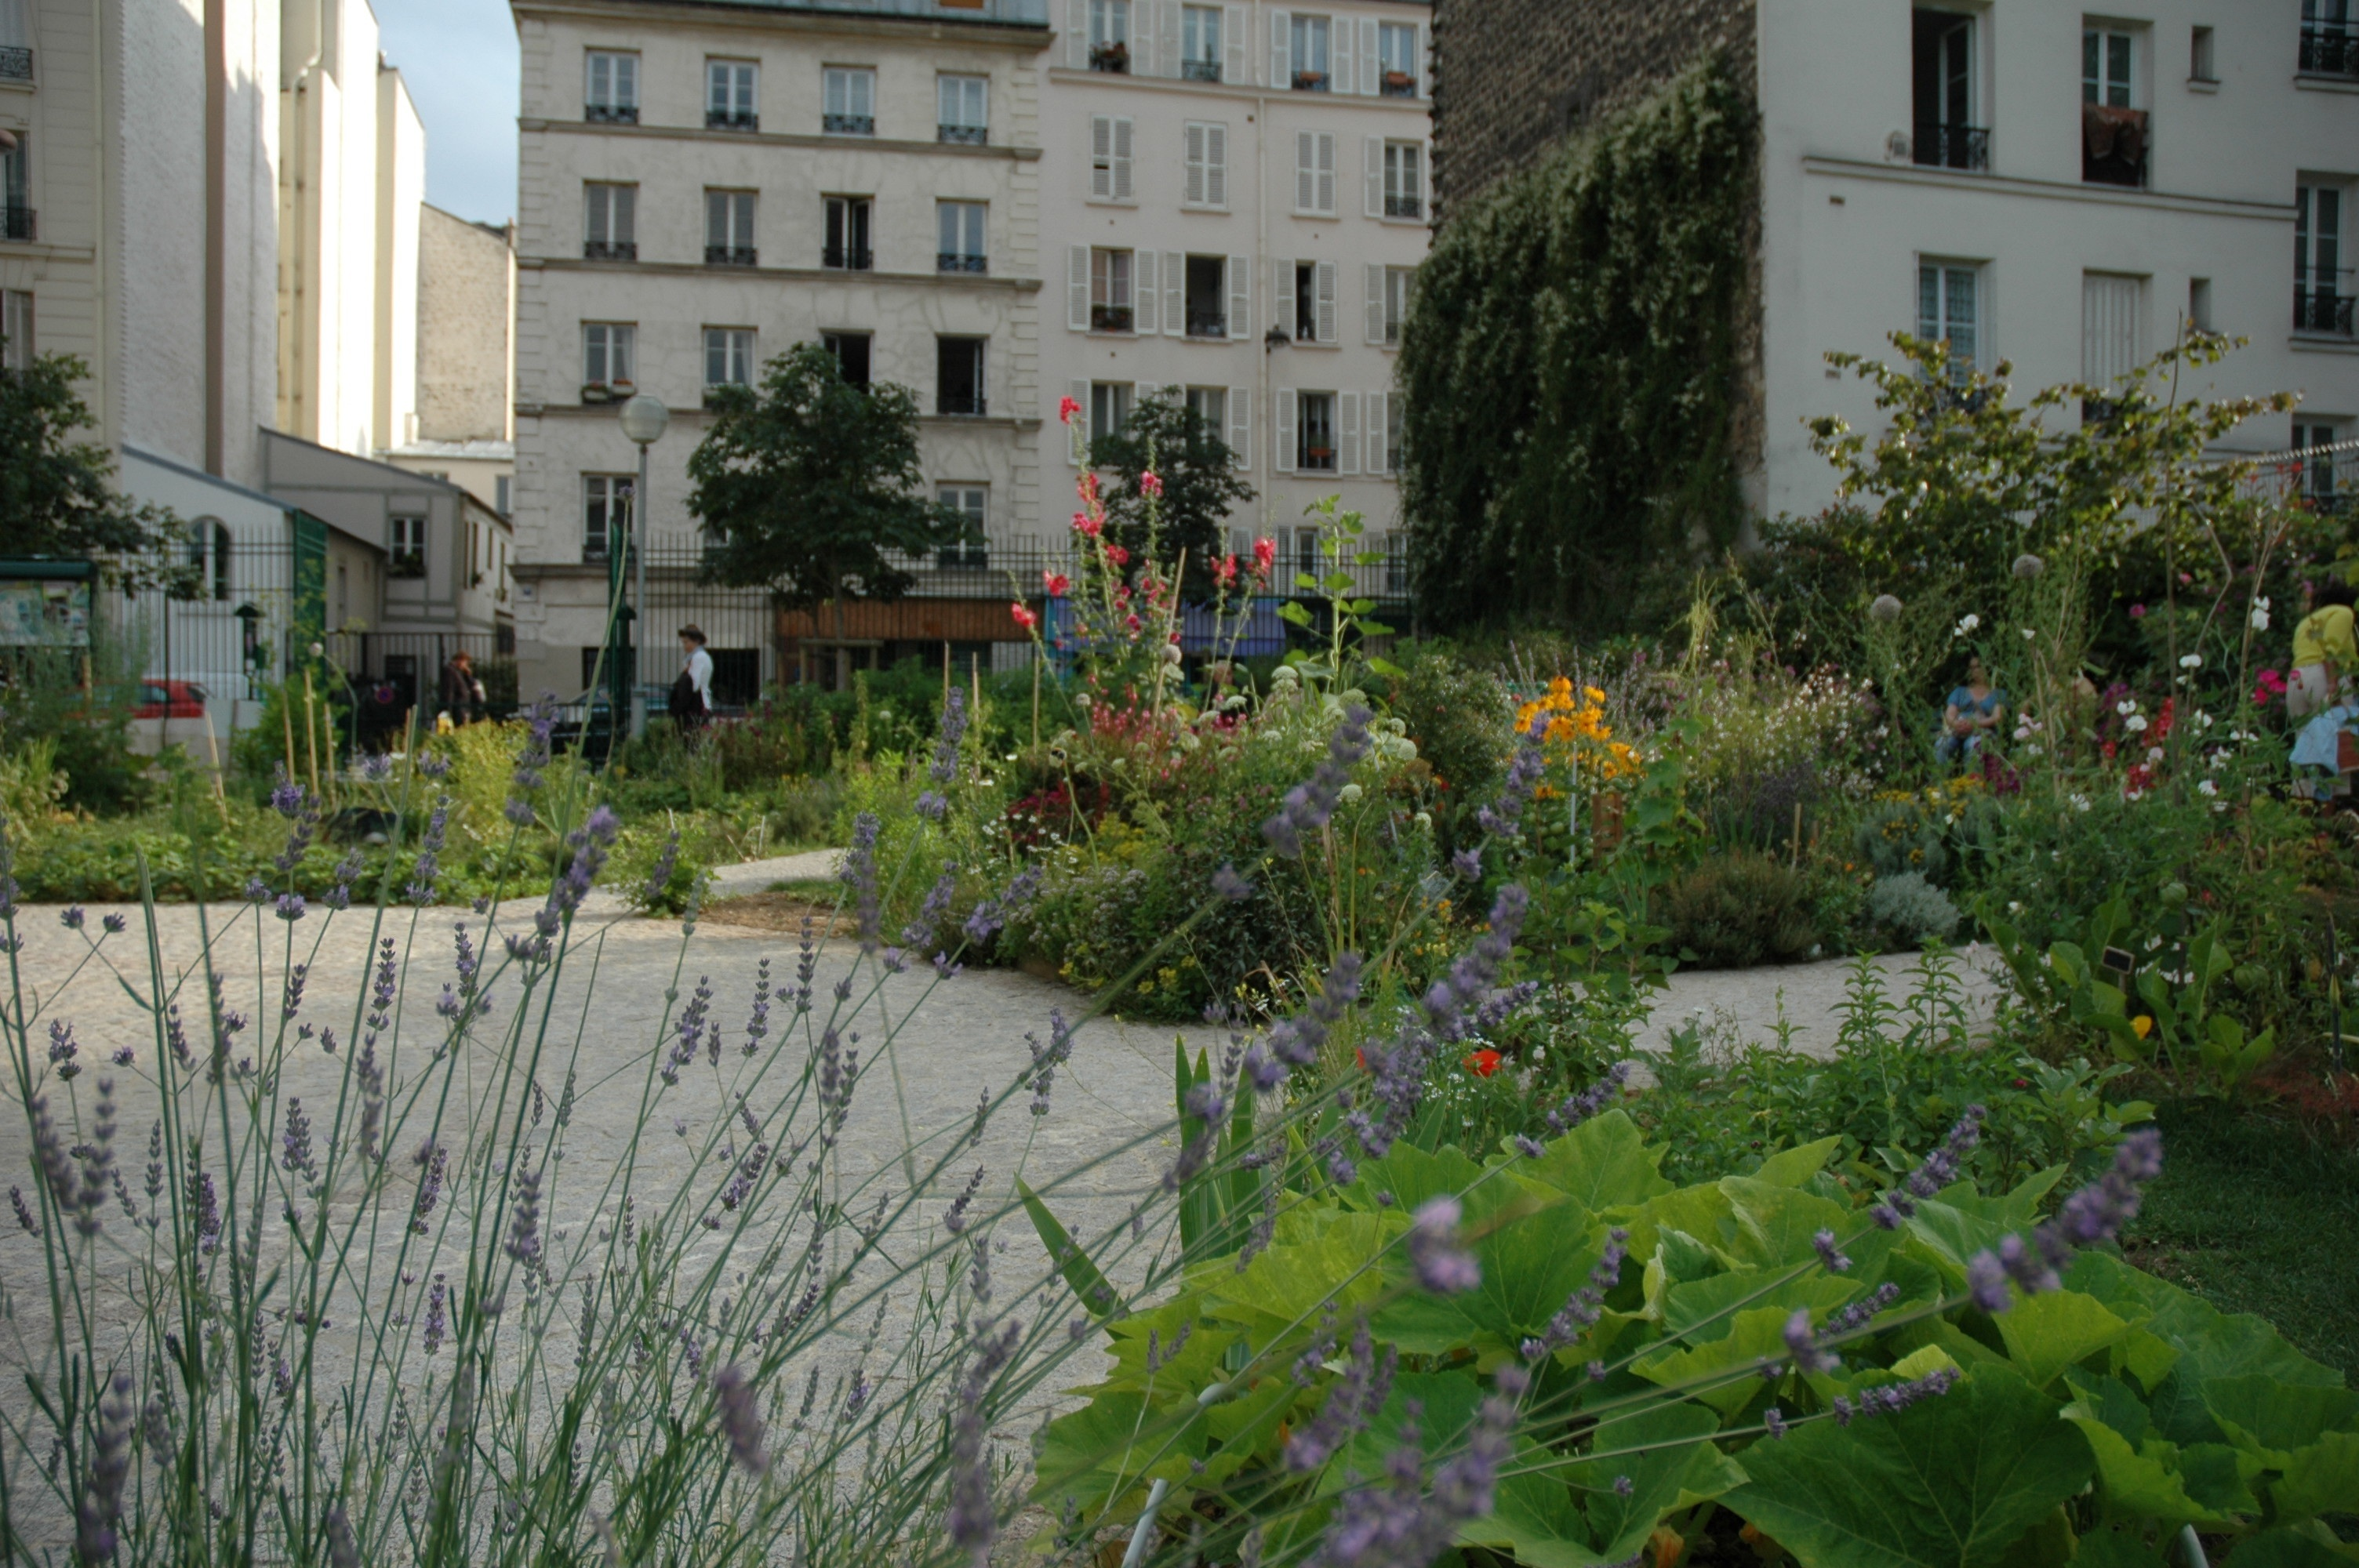 F te des jardins 2014 em paris for Le jardin 3 vallons